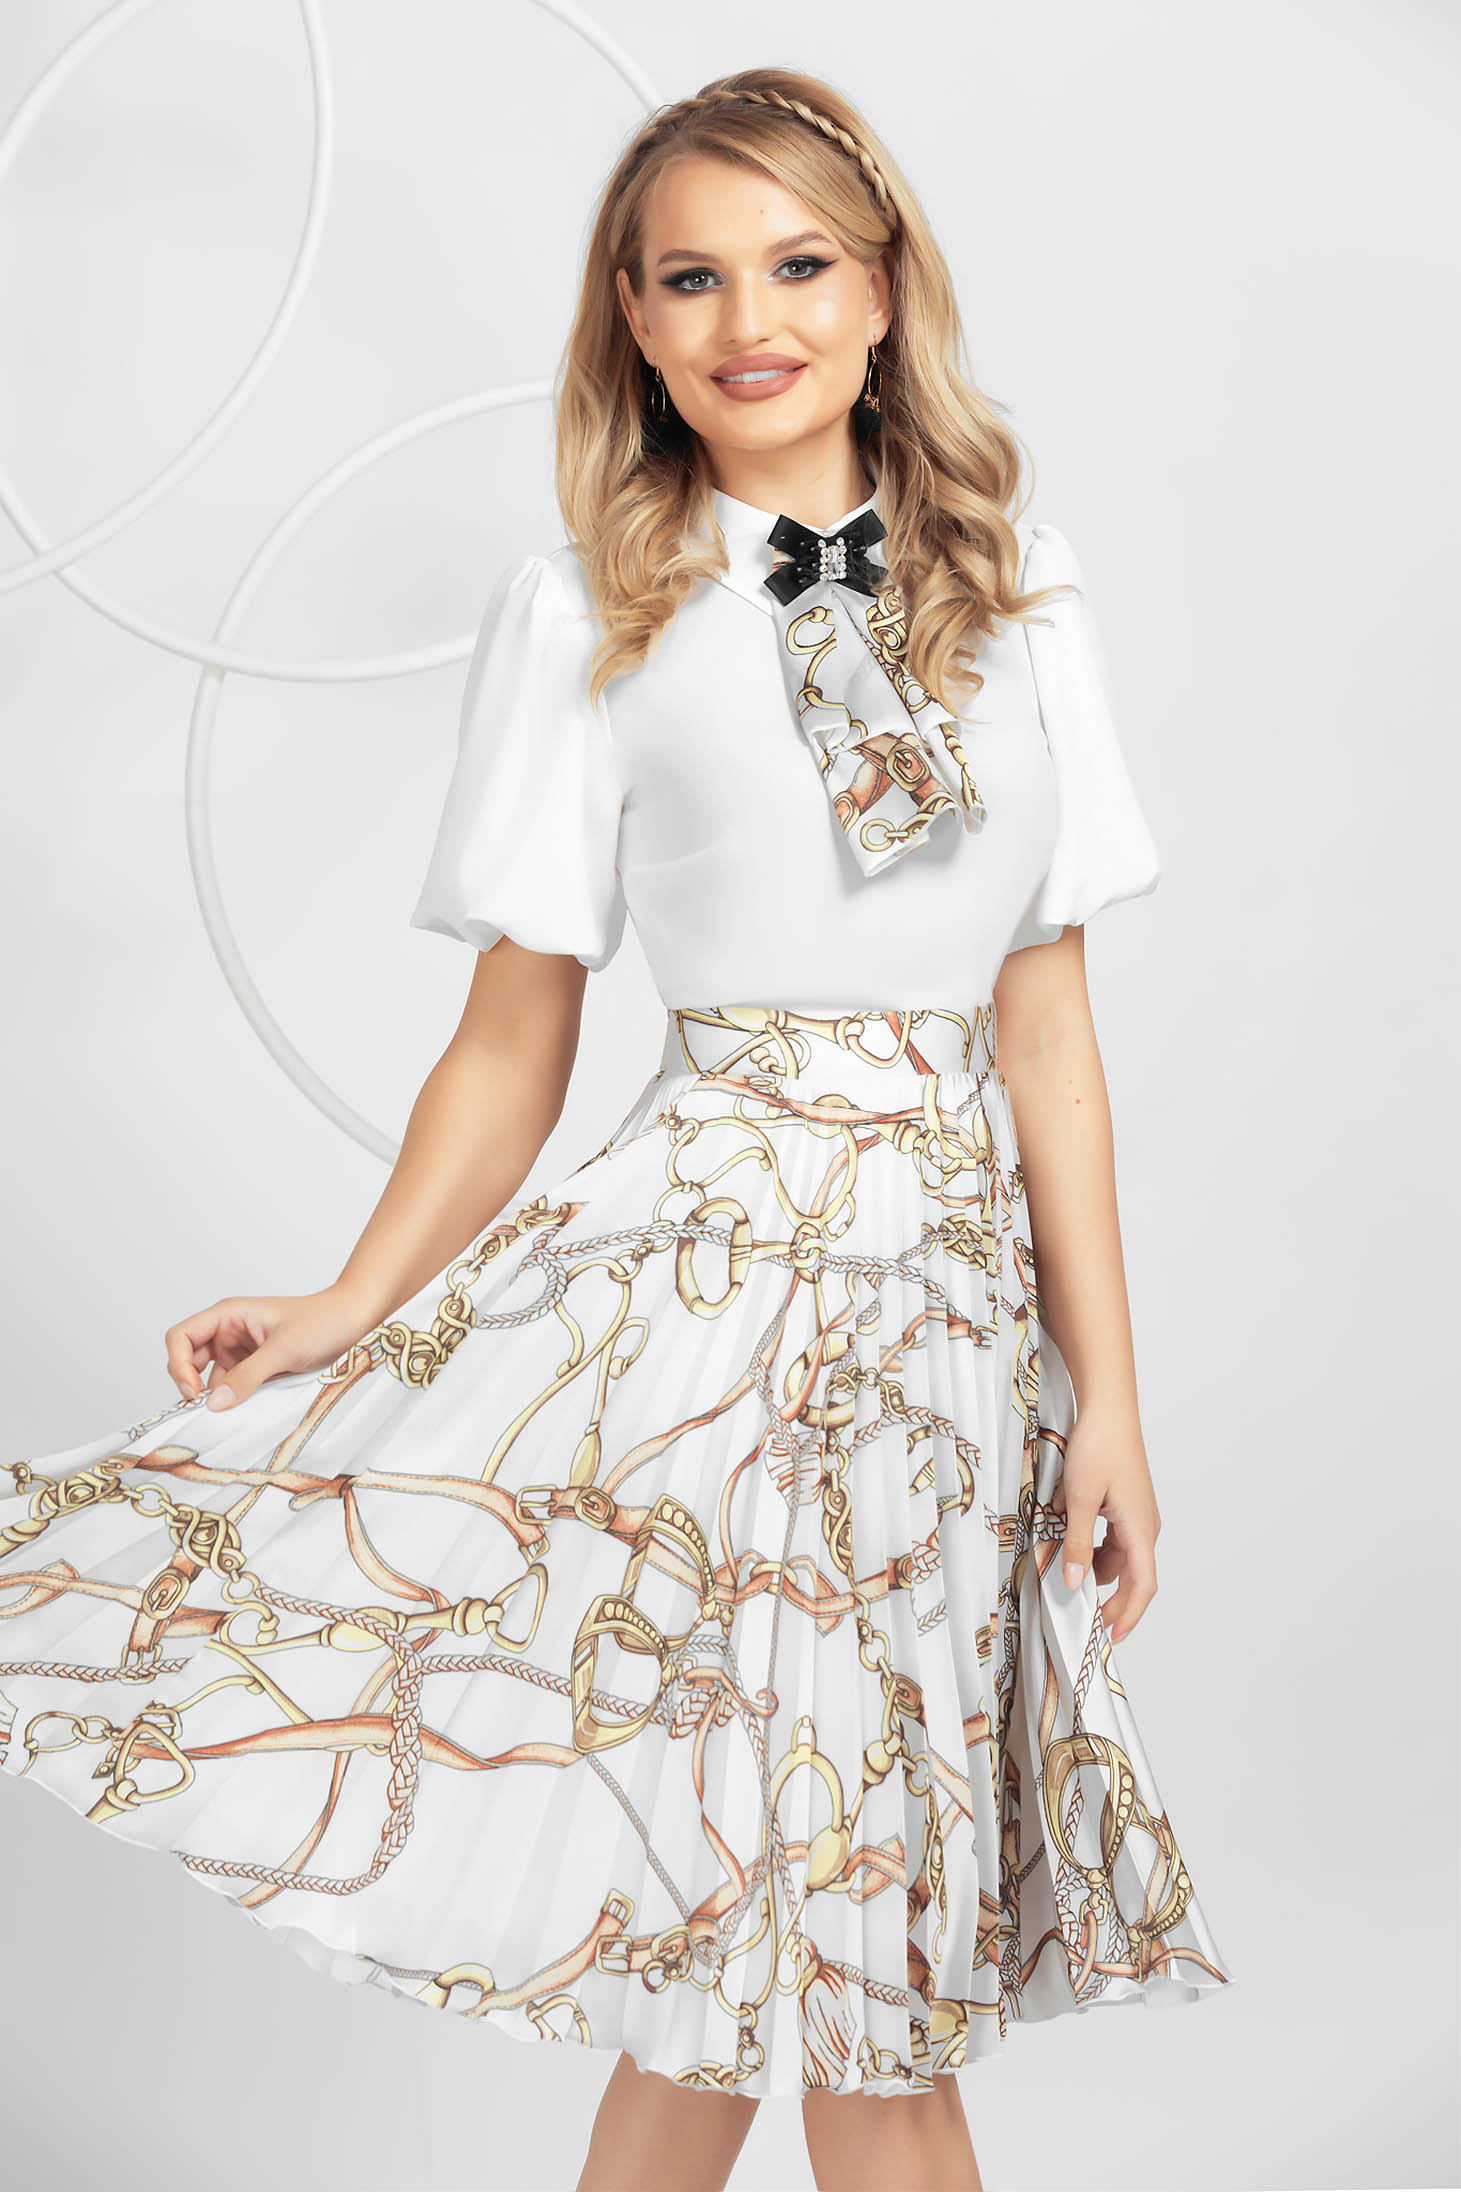 Grey skirt airy fabric with floral print with elastic waist pleats of material